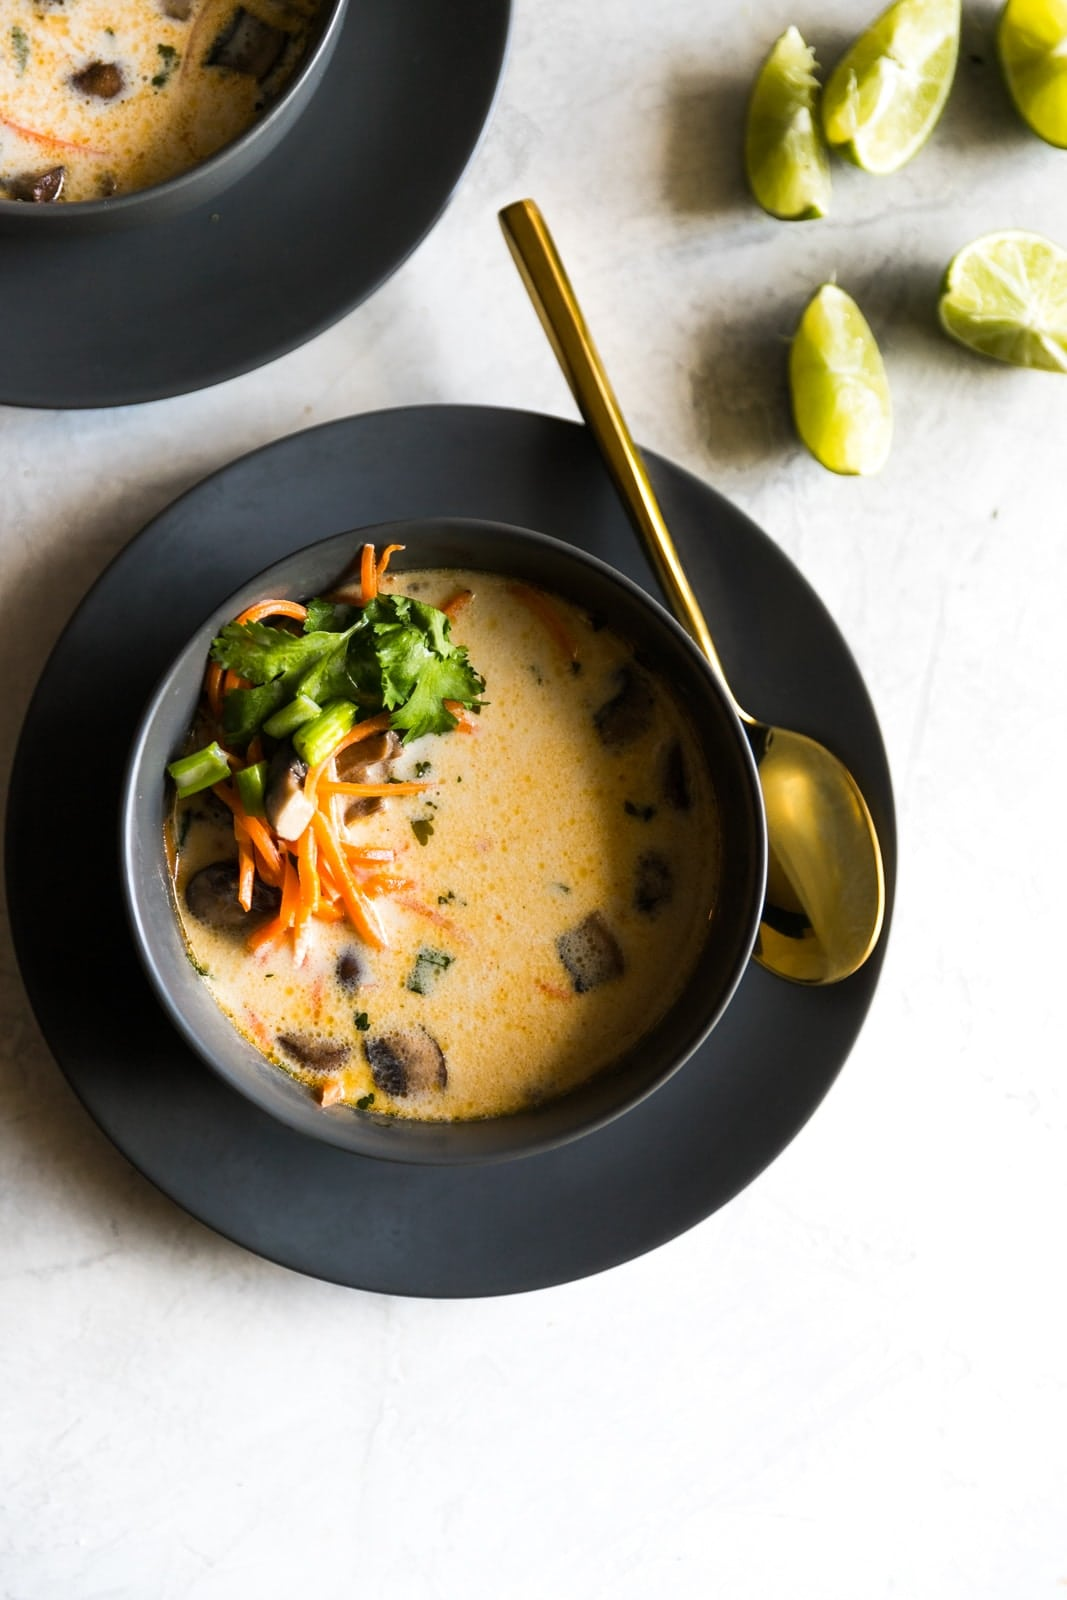 An easy, dairy-free, lightened up version of thai coconut soup made with coconut milk, ginger, spices and veggies. Perfect vegetarian weeknight dinner idea!